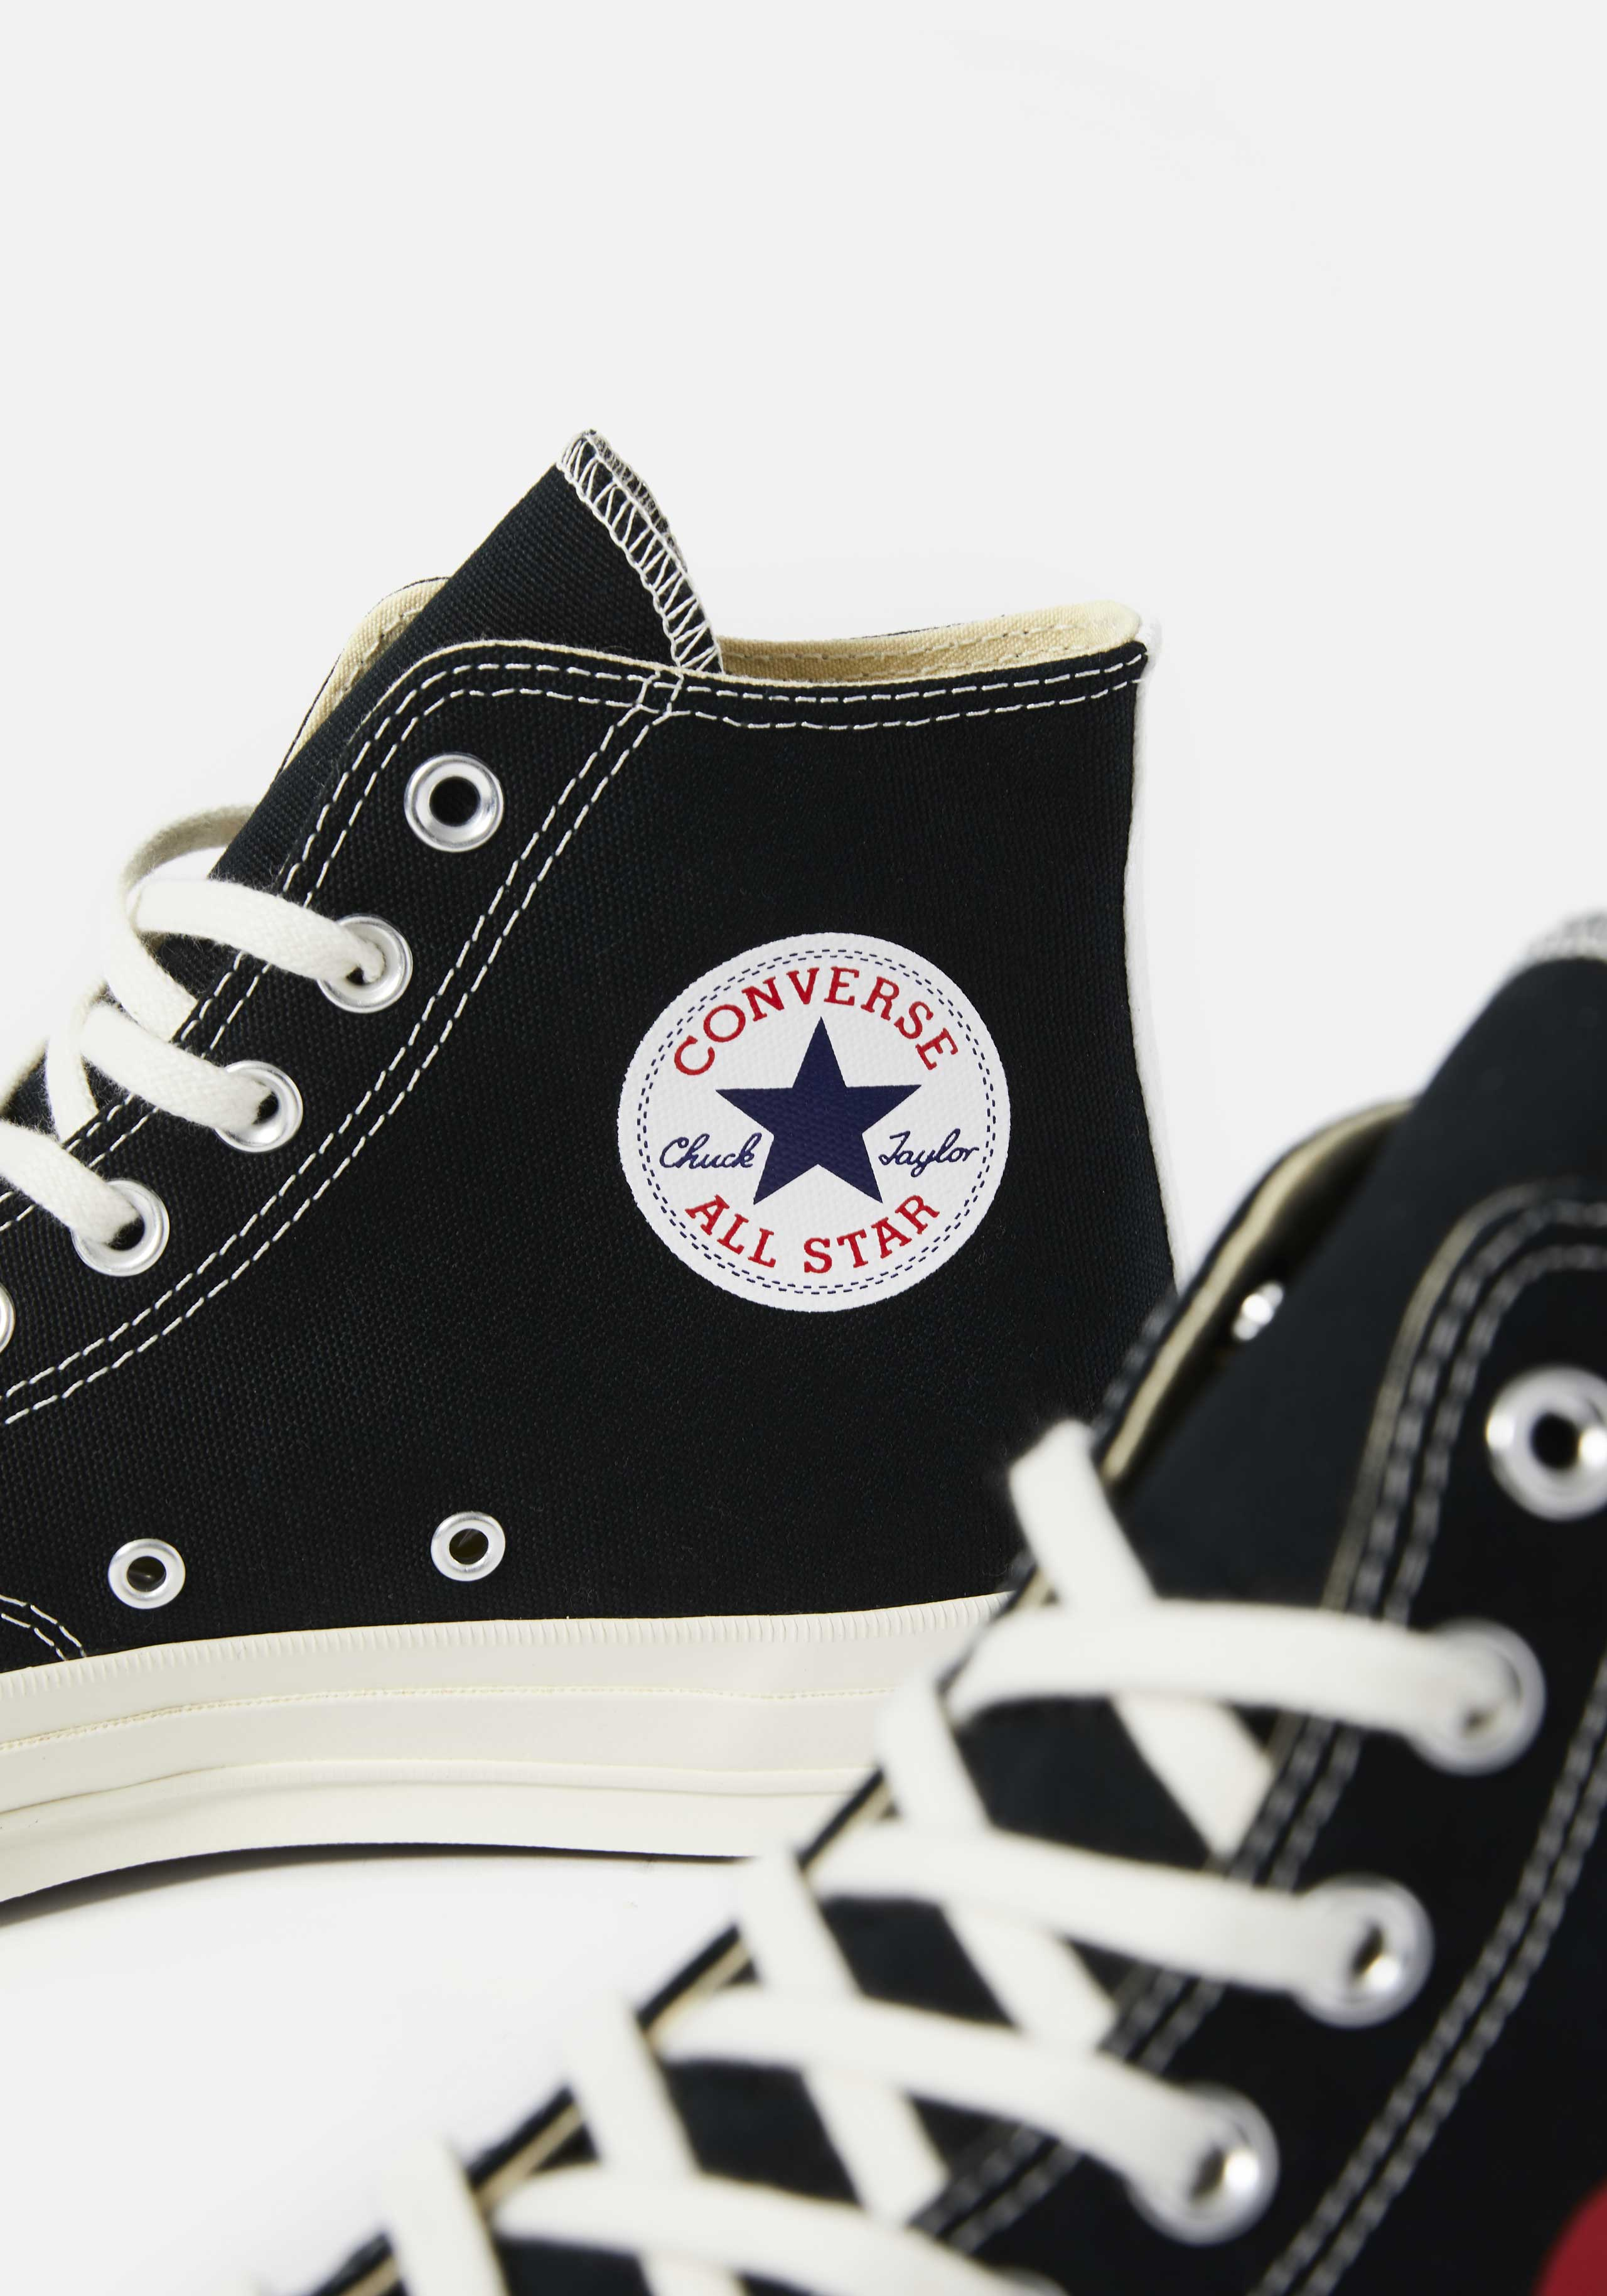 cdg play converse red heart 70s high 3